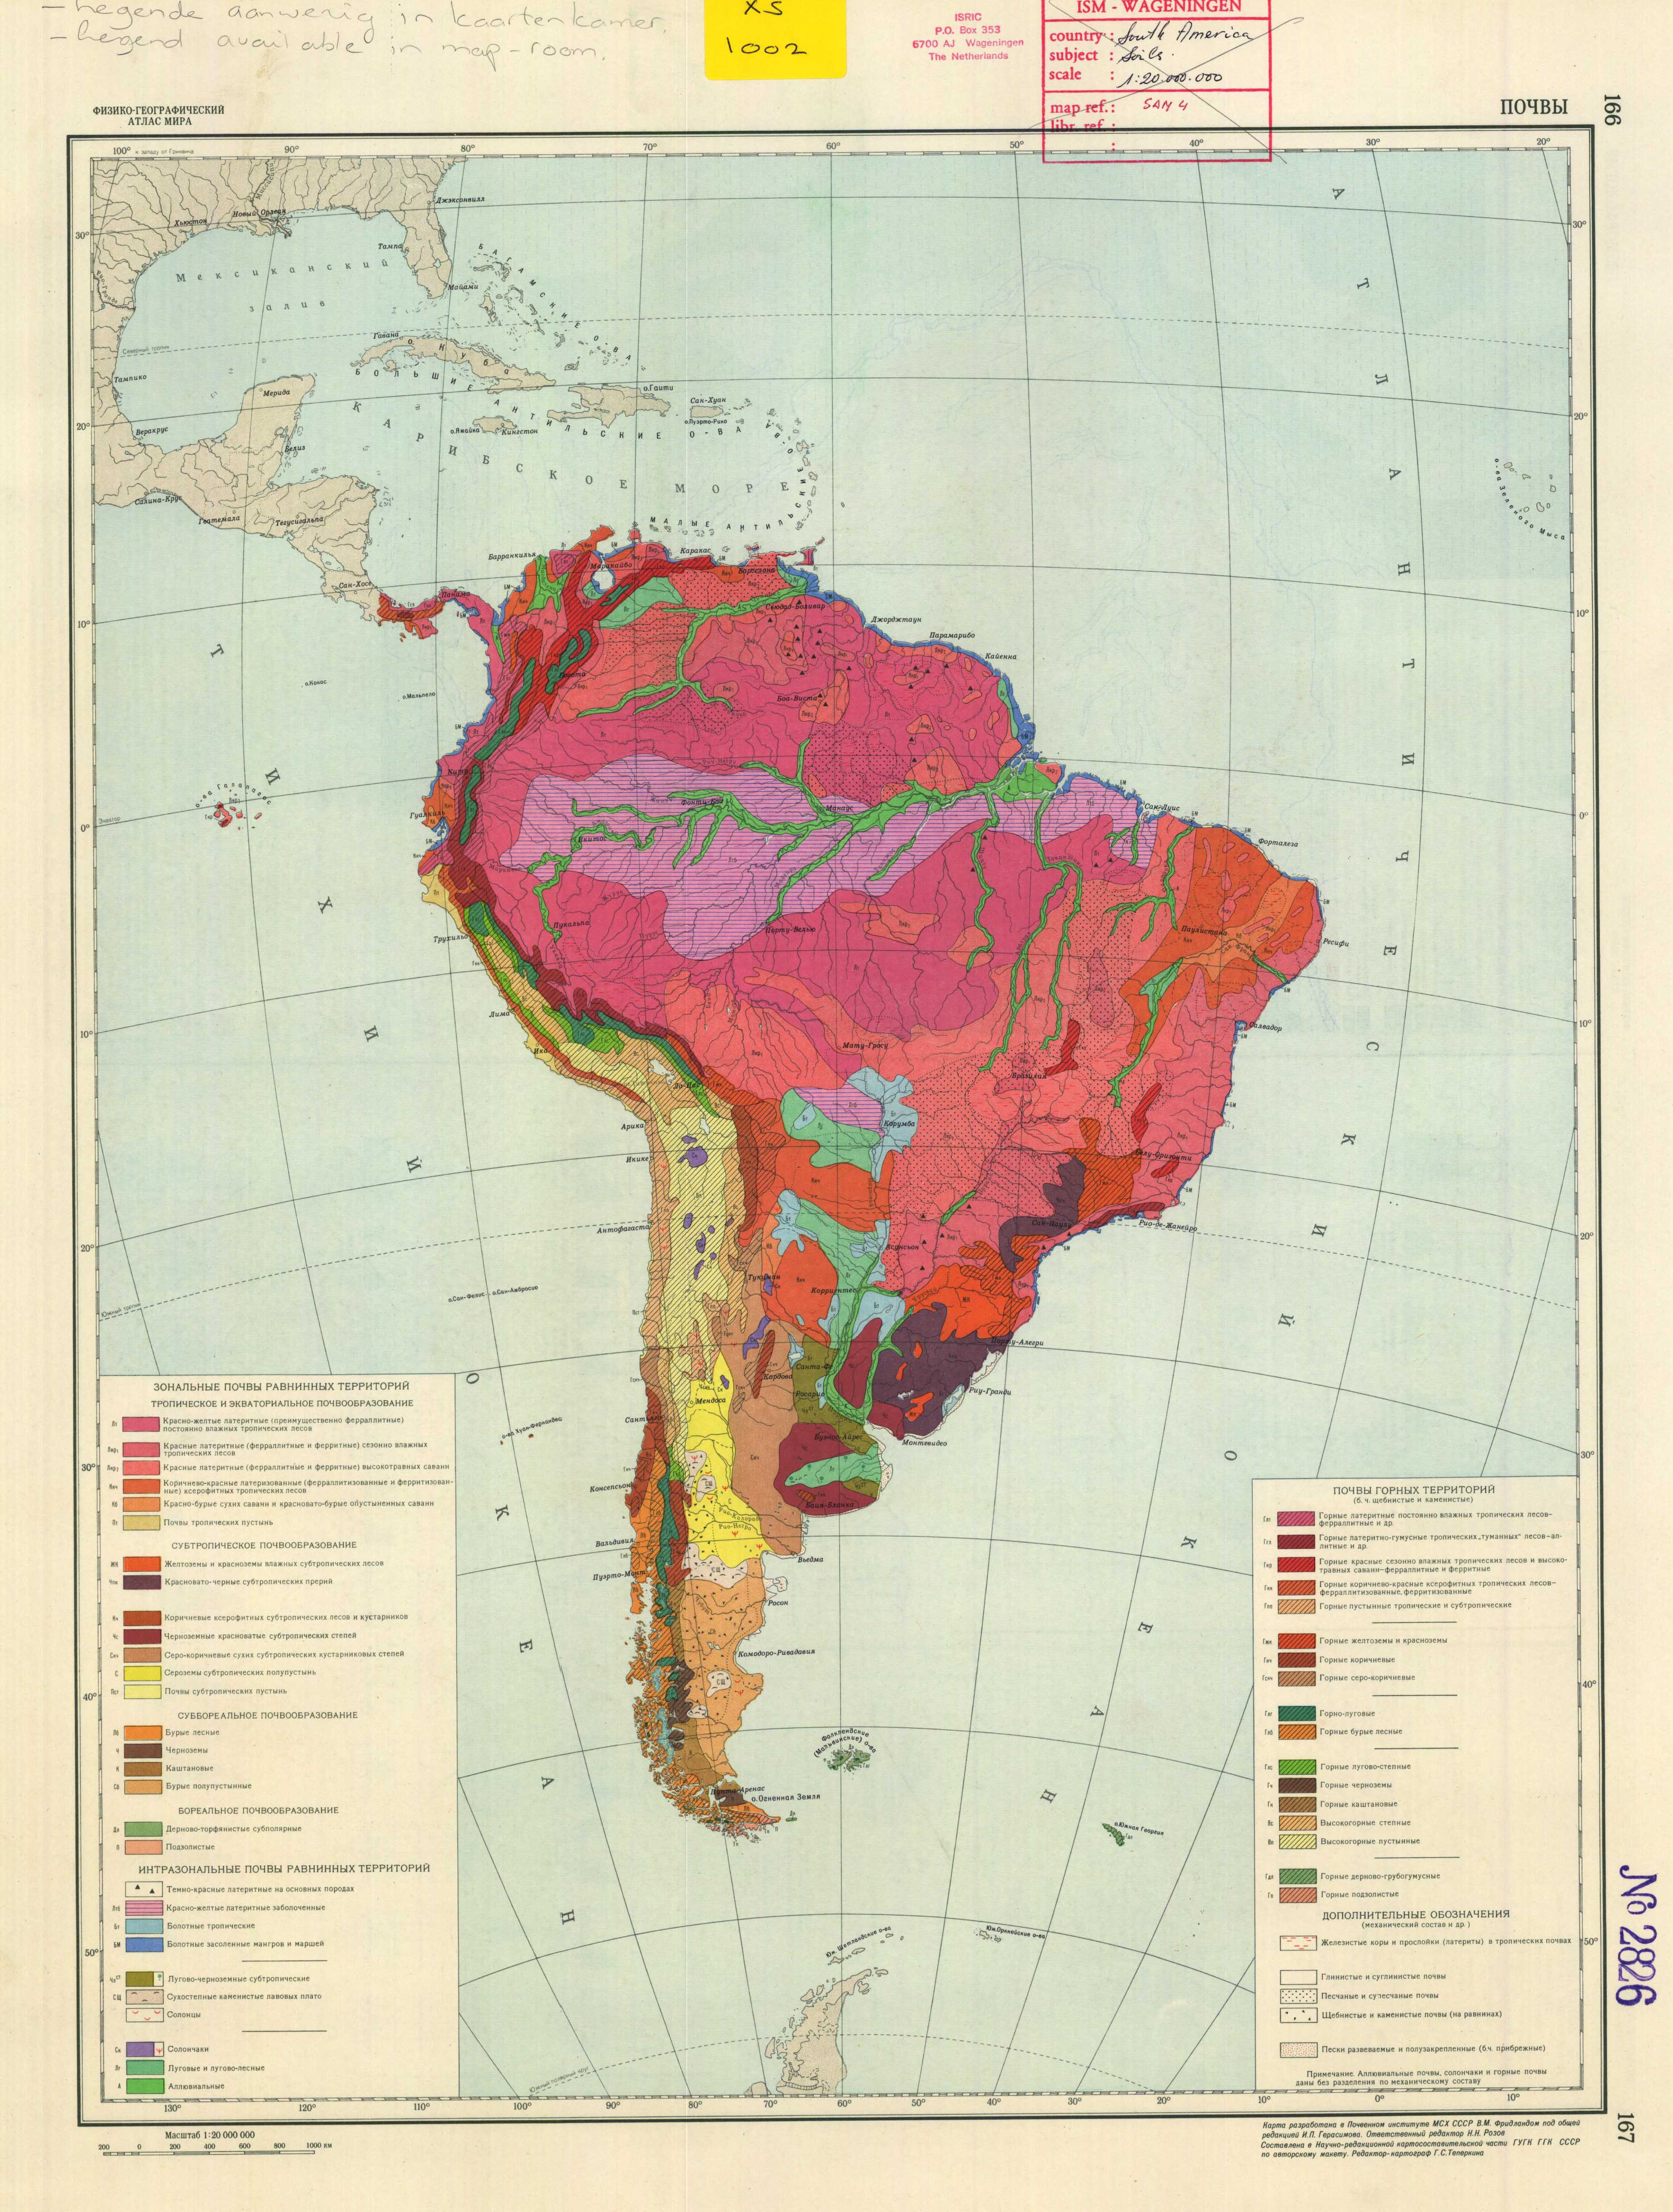 national geographic map europe with South America Soil Map on Europe Before And After World War 2 likewise 131219 Pikas Eat Mosses Global Warming Animals Science as well Dublin likewise Historic District Old Quebec additionally Portugal Map Portuguese National Traditional Symbols And Objects Gm678103890 124371809.